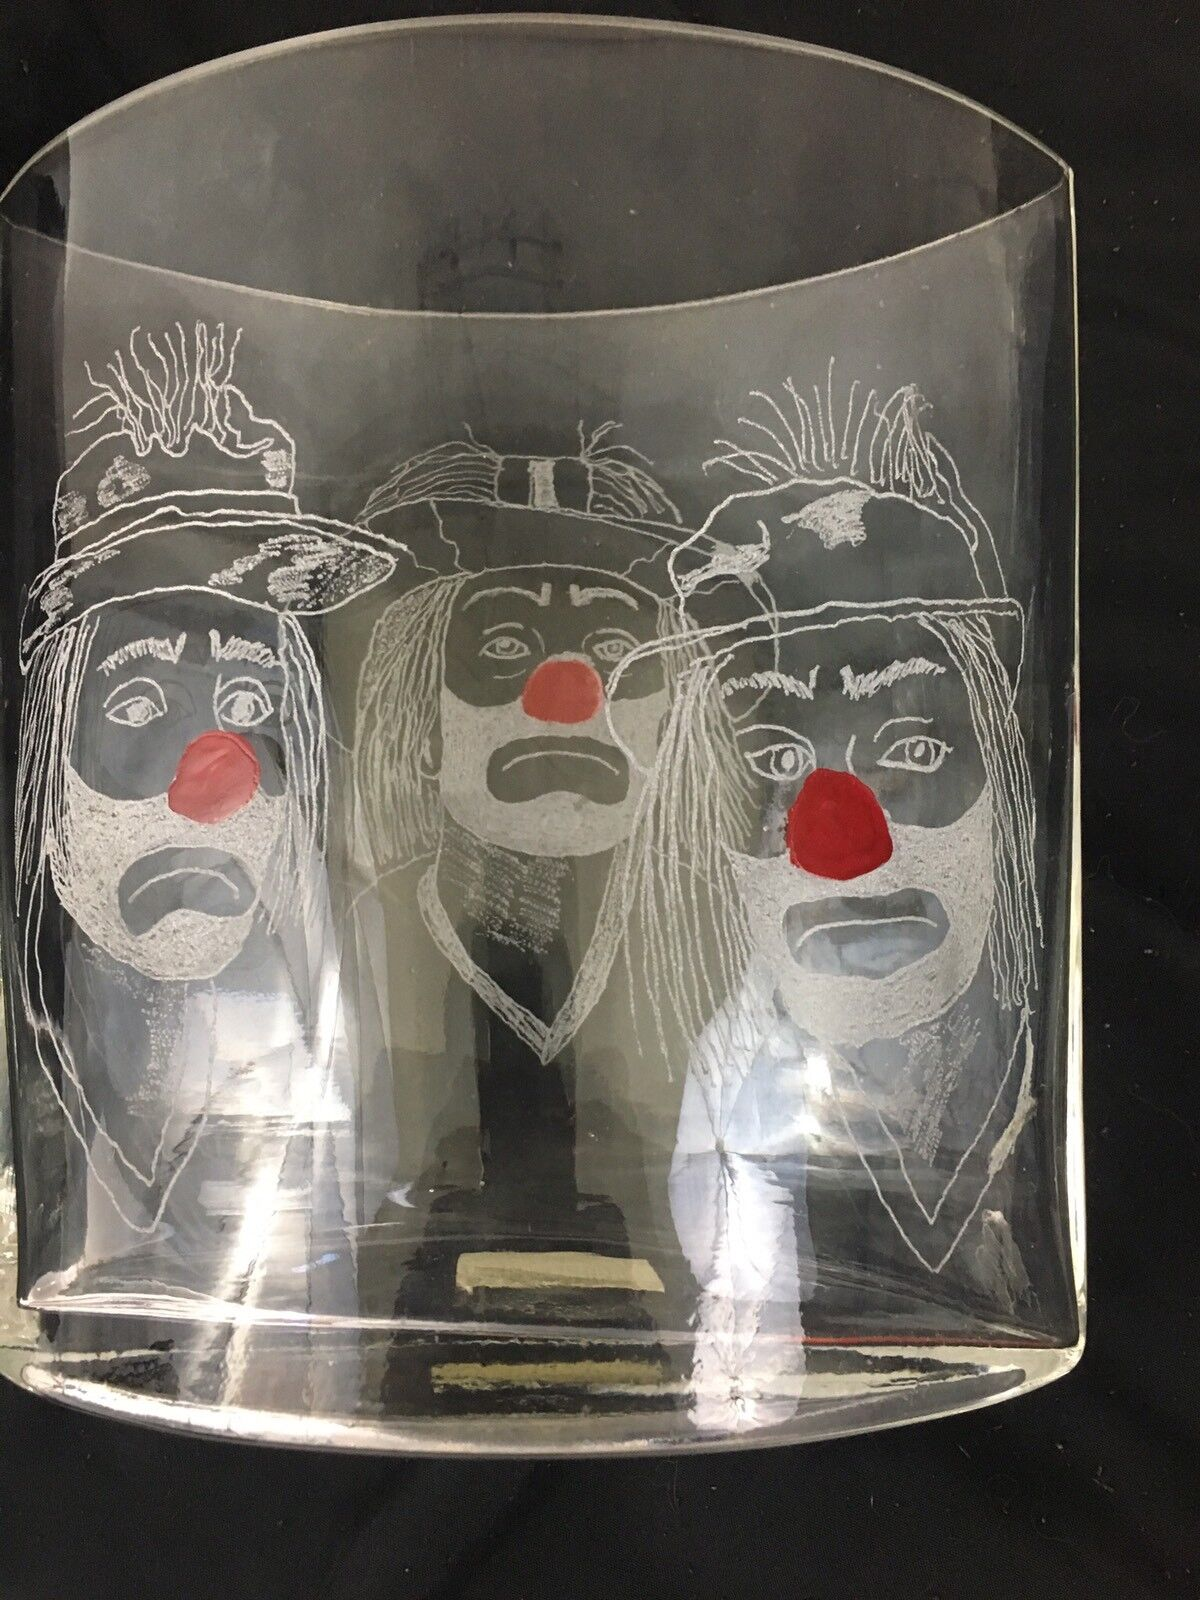 One Of A Kind Vases Hand Etched With Emmett Kelly Images Set Of 6 Без бренда - фотография #6